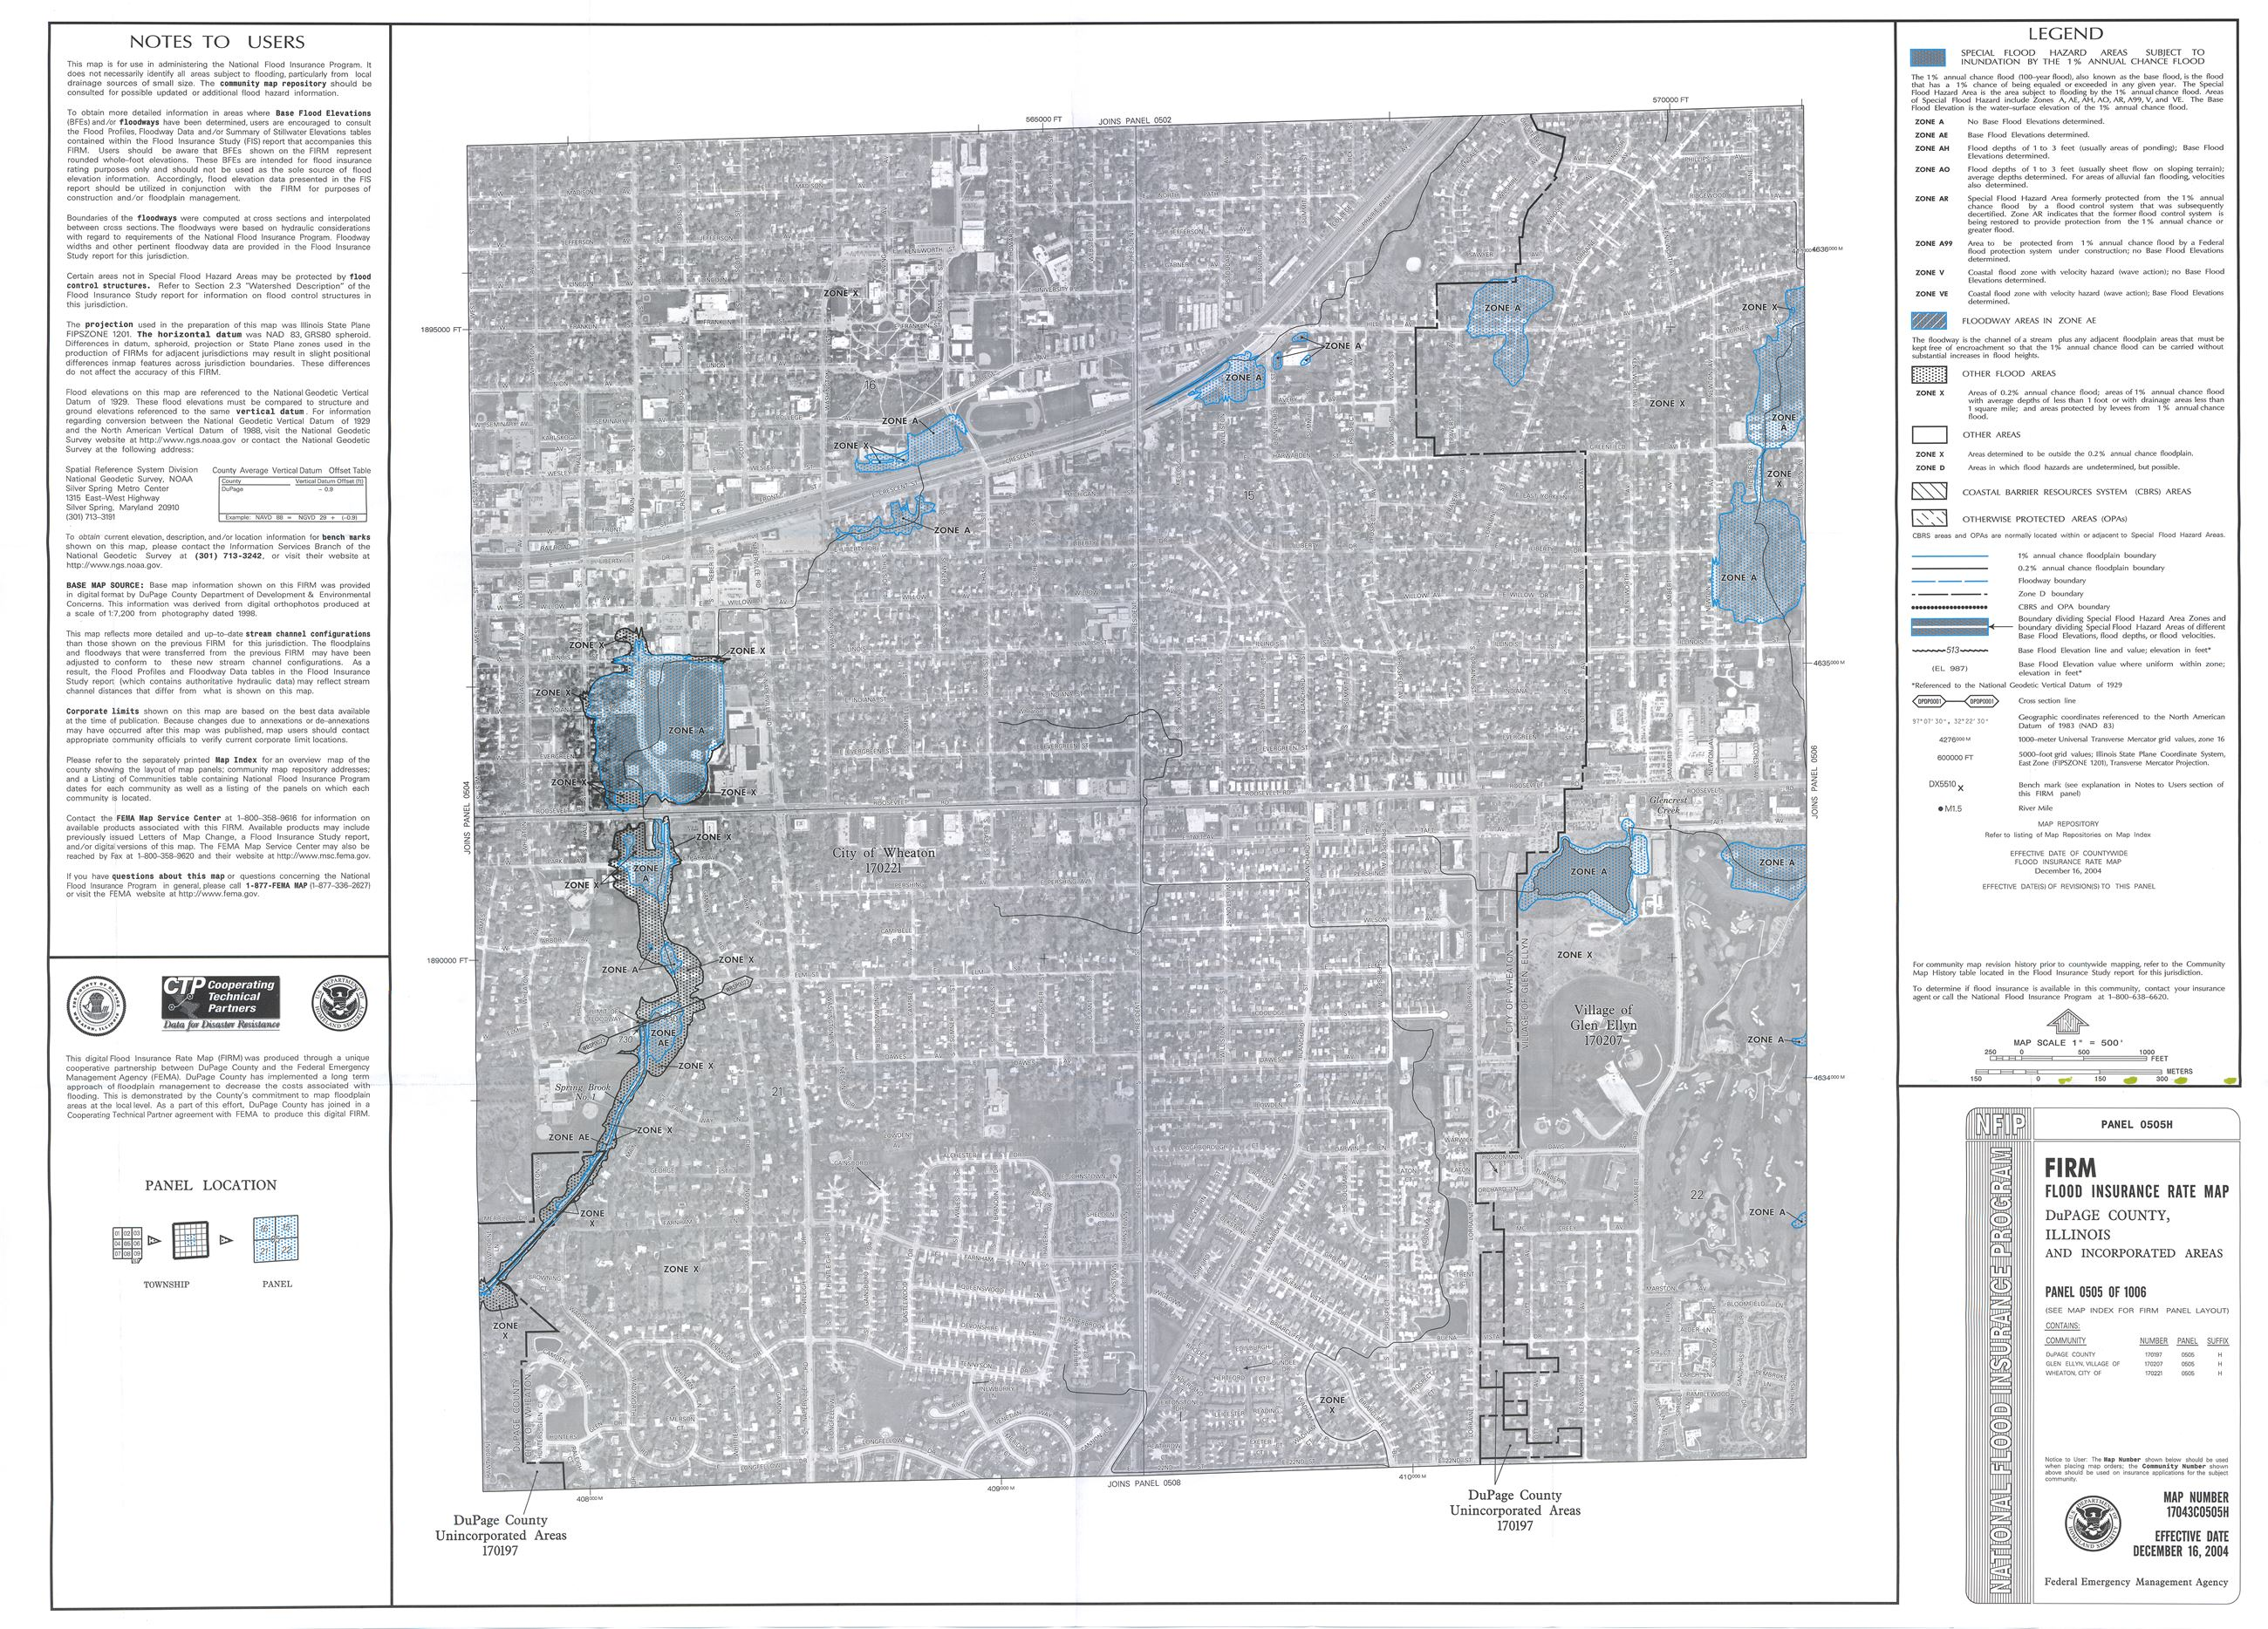 2004 FEMA Maps Updated